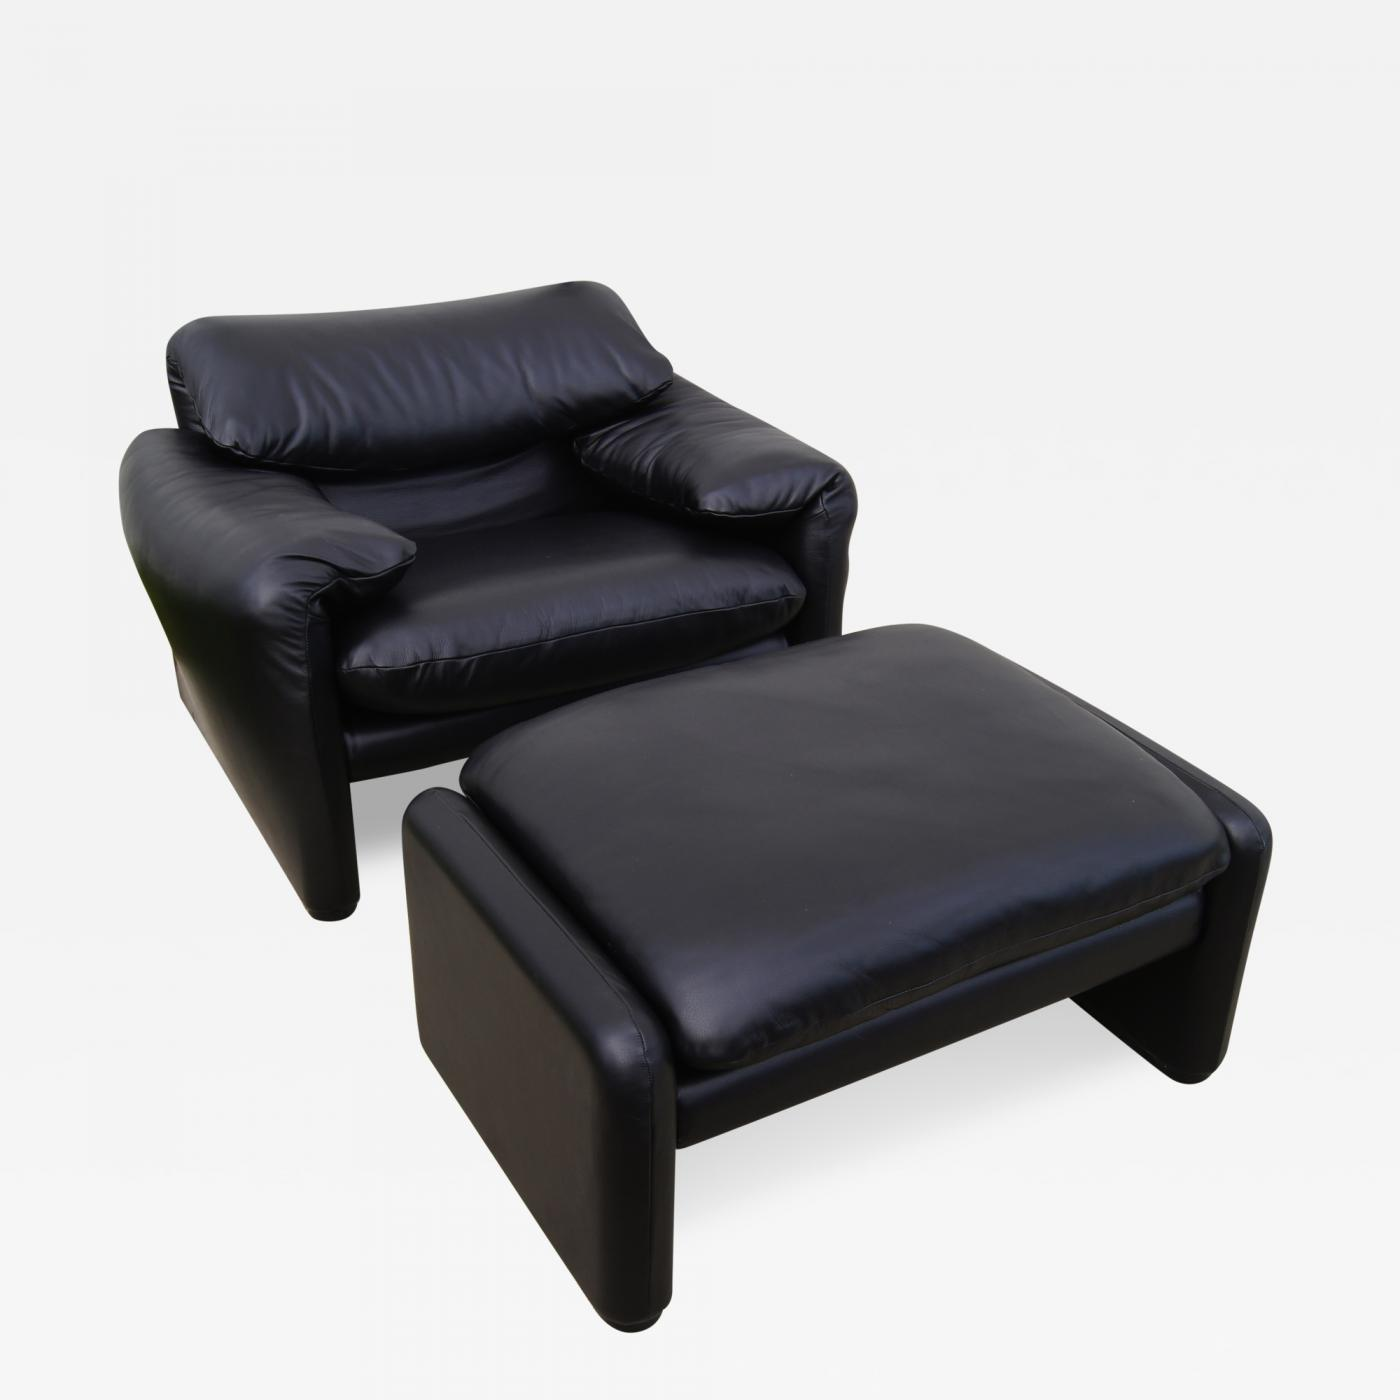 Vico Magistretti Leather Maralunga Lounge Chair & Ottoman by